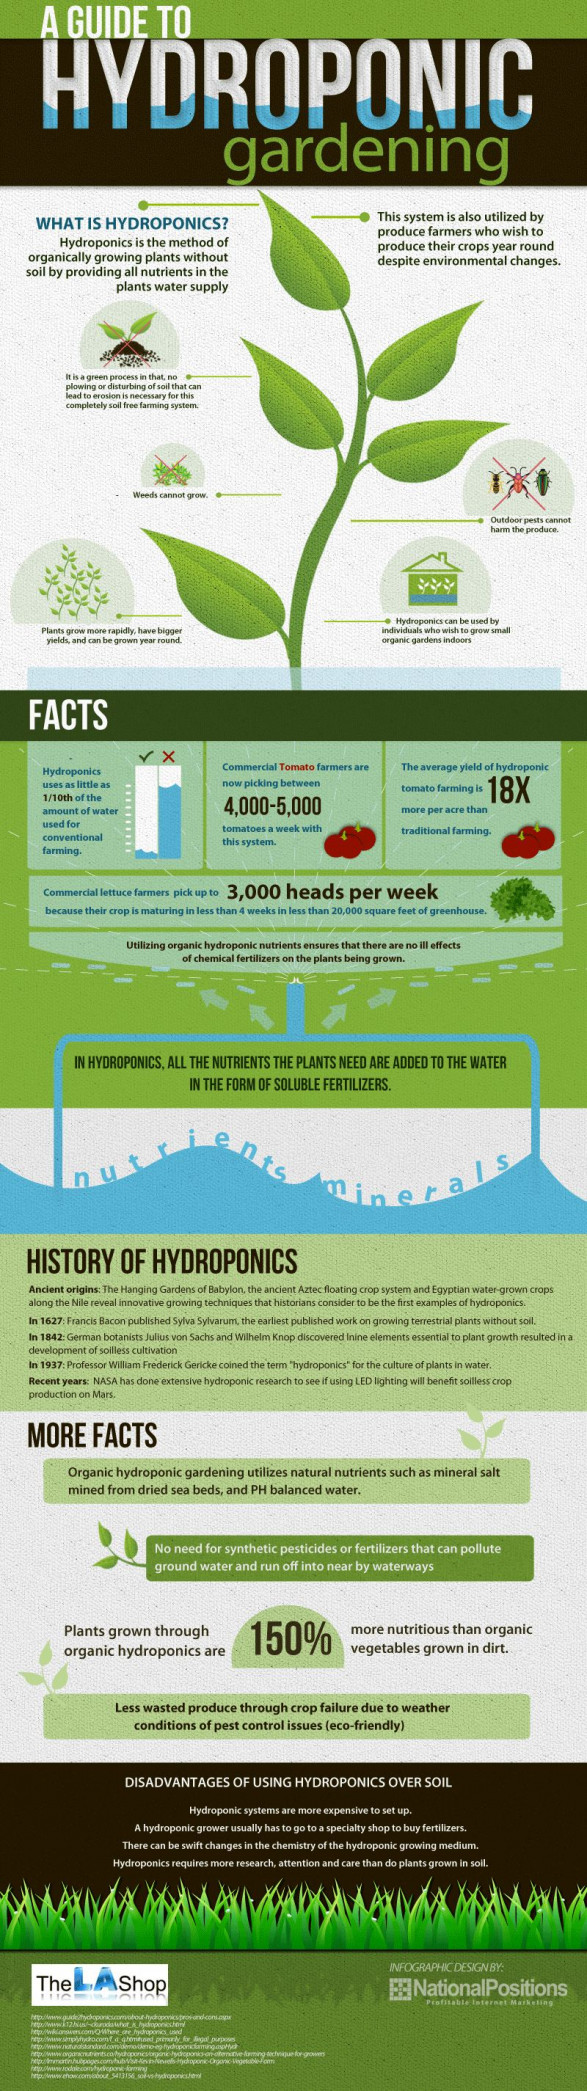 A Guide to Hydroponic Gardening